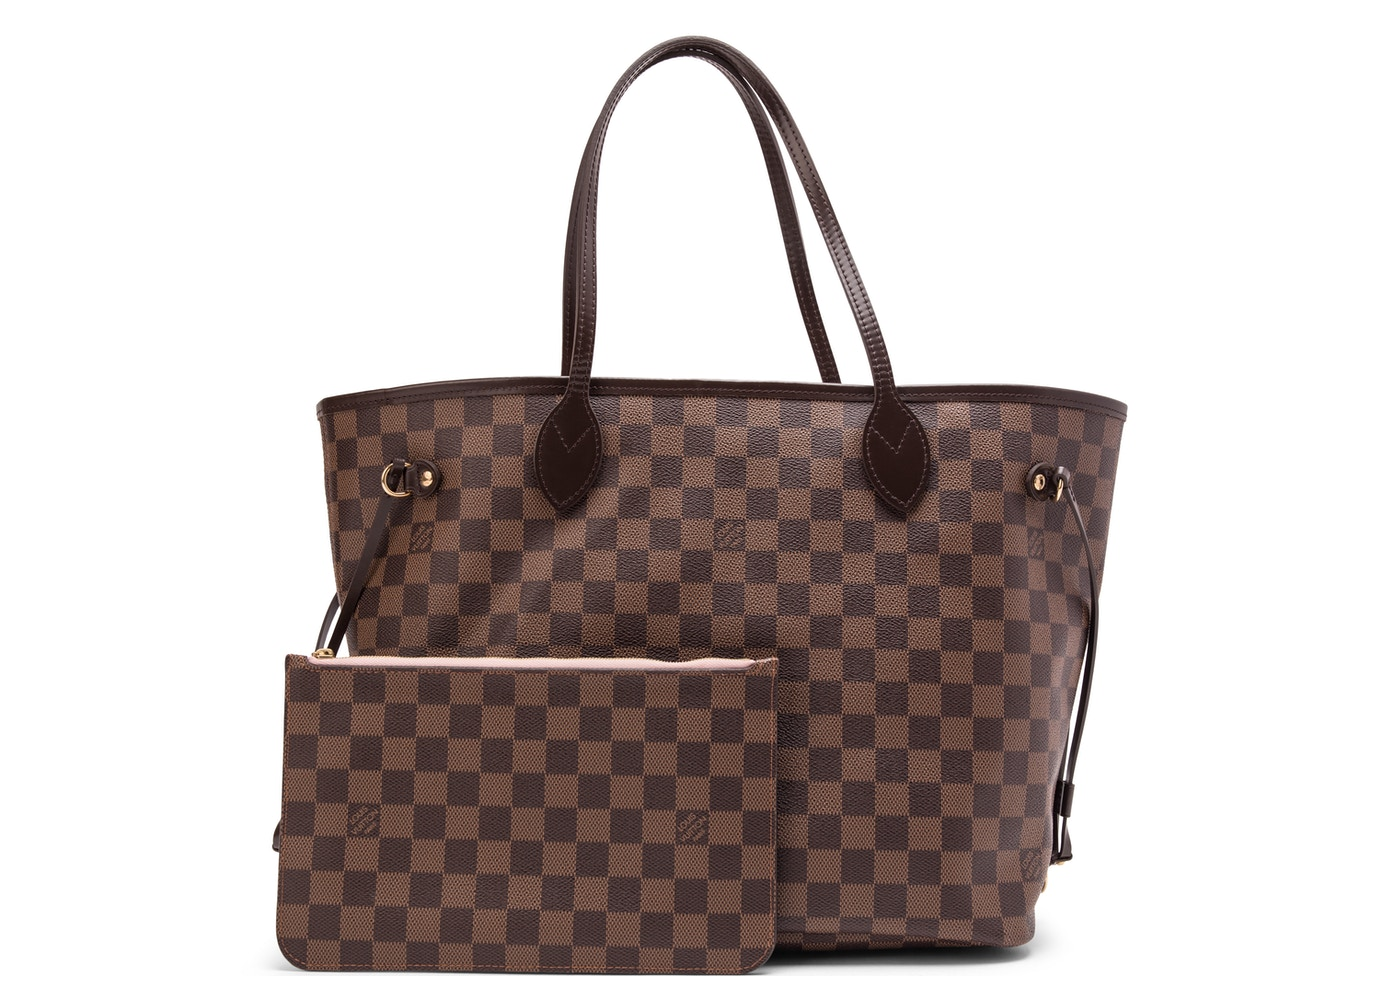 14137663faba Louis Vuitton Neverfull NM Damier Ebene MM (With Pouch) Rose ...